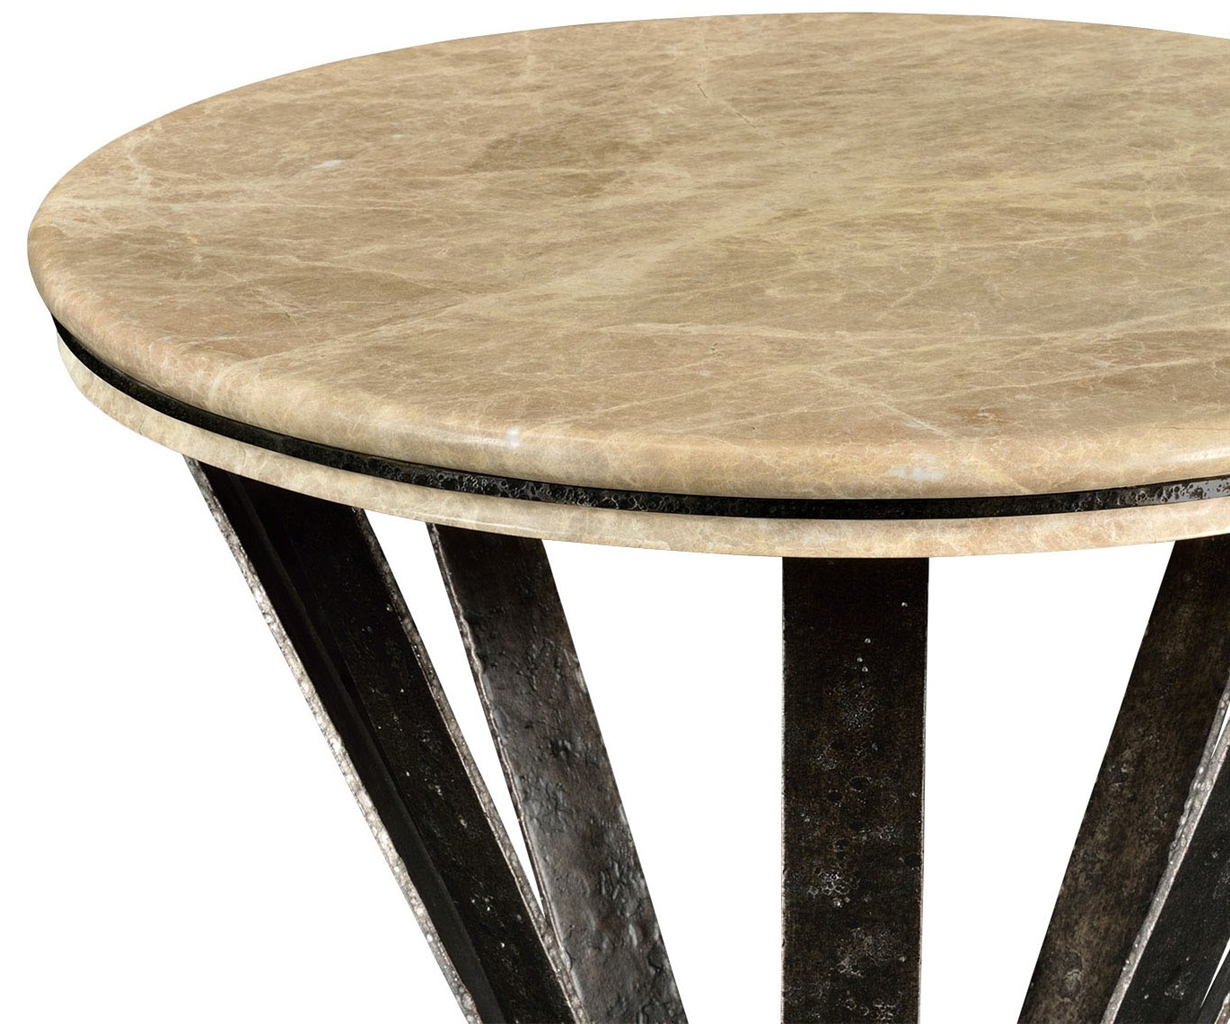 Dark Marble Top Round Coffee Table With Iron Base